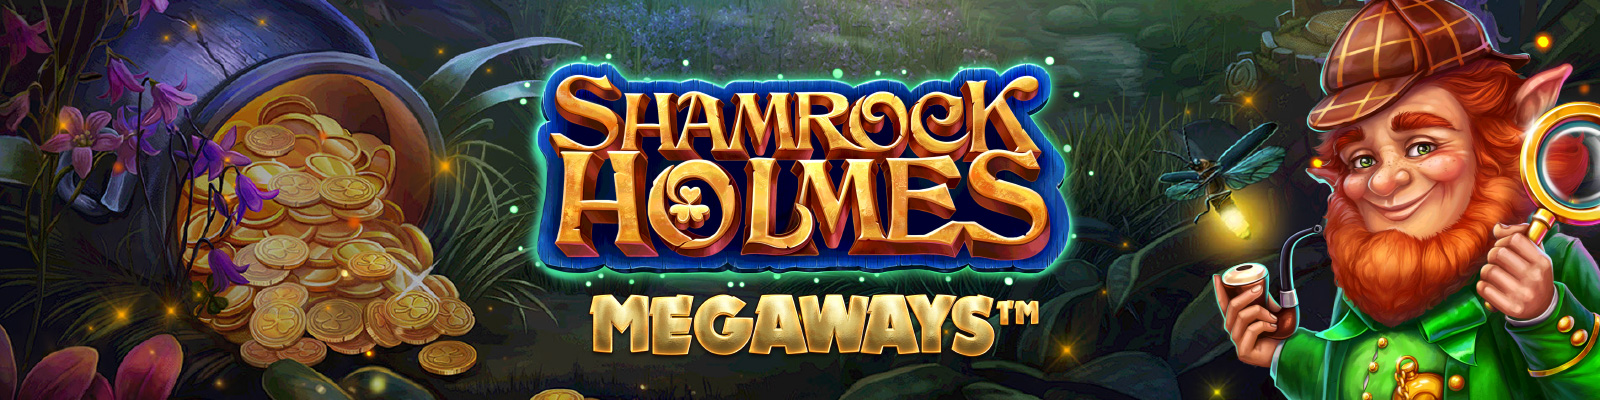 Shamrock Holmes Megaways from Microgaming